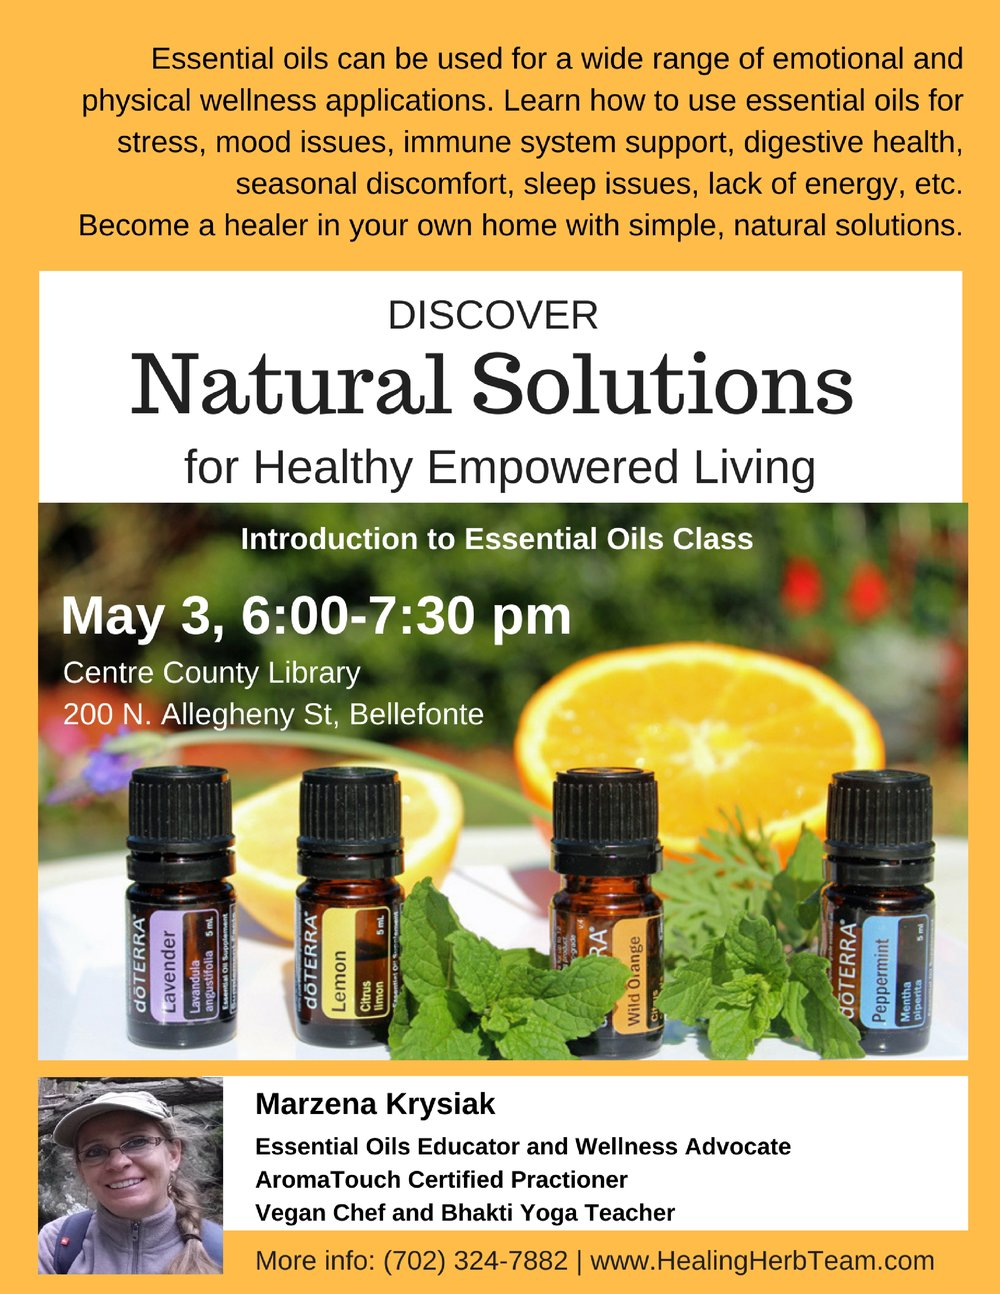 Natural Solutions May 3 Bellefonte.jpg